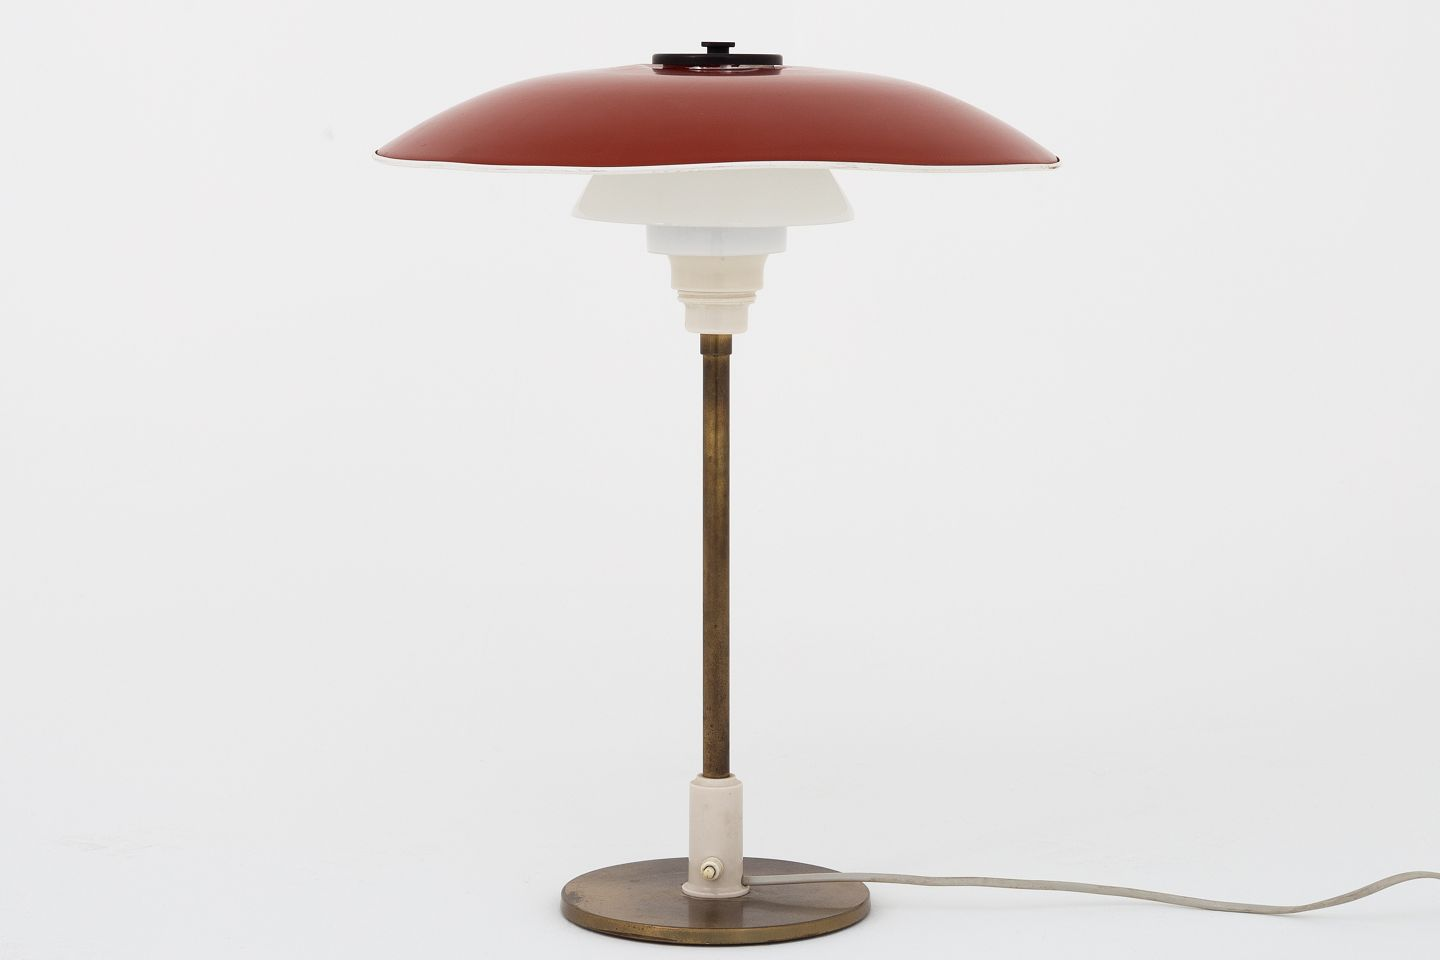 Poul Henningsen Poul Henningsen Louis Poulsen Ph 4 3 Table Lamp In Brass With Red Lacquered Metal Shade Glass Shades And White Bakelite 1 Pc In Stock Original